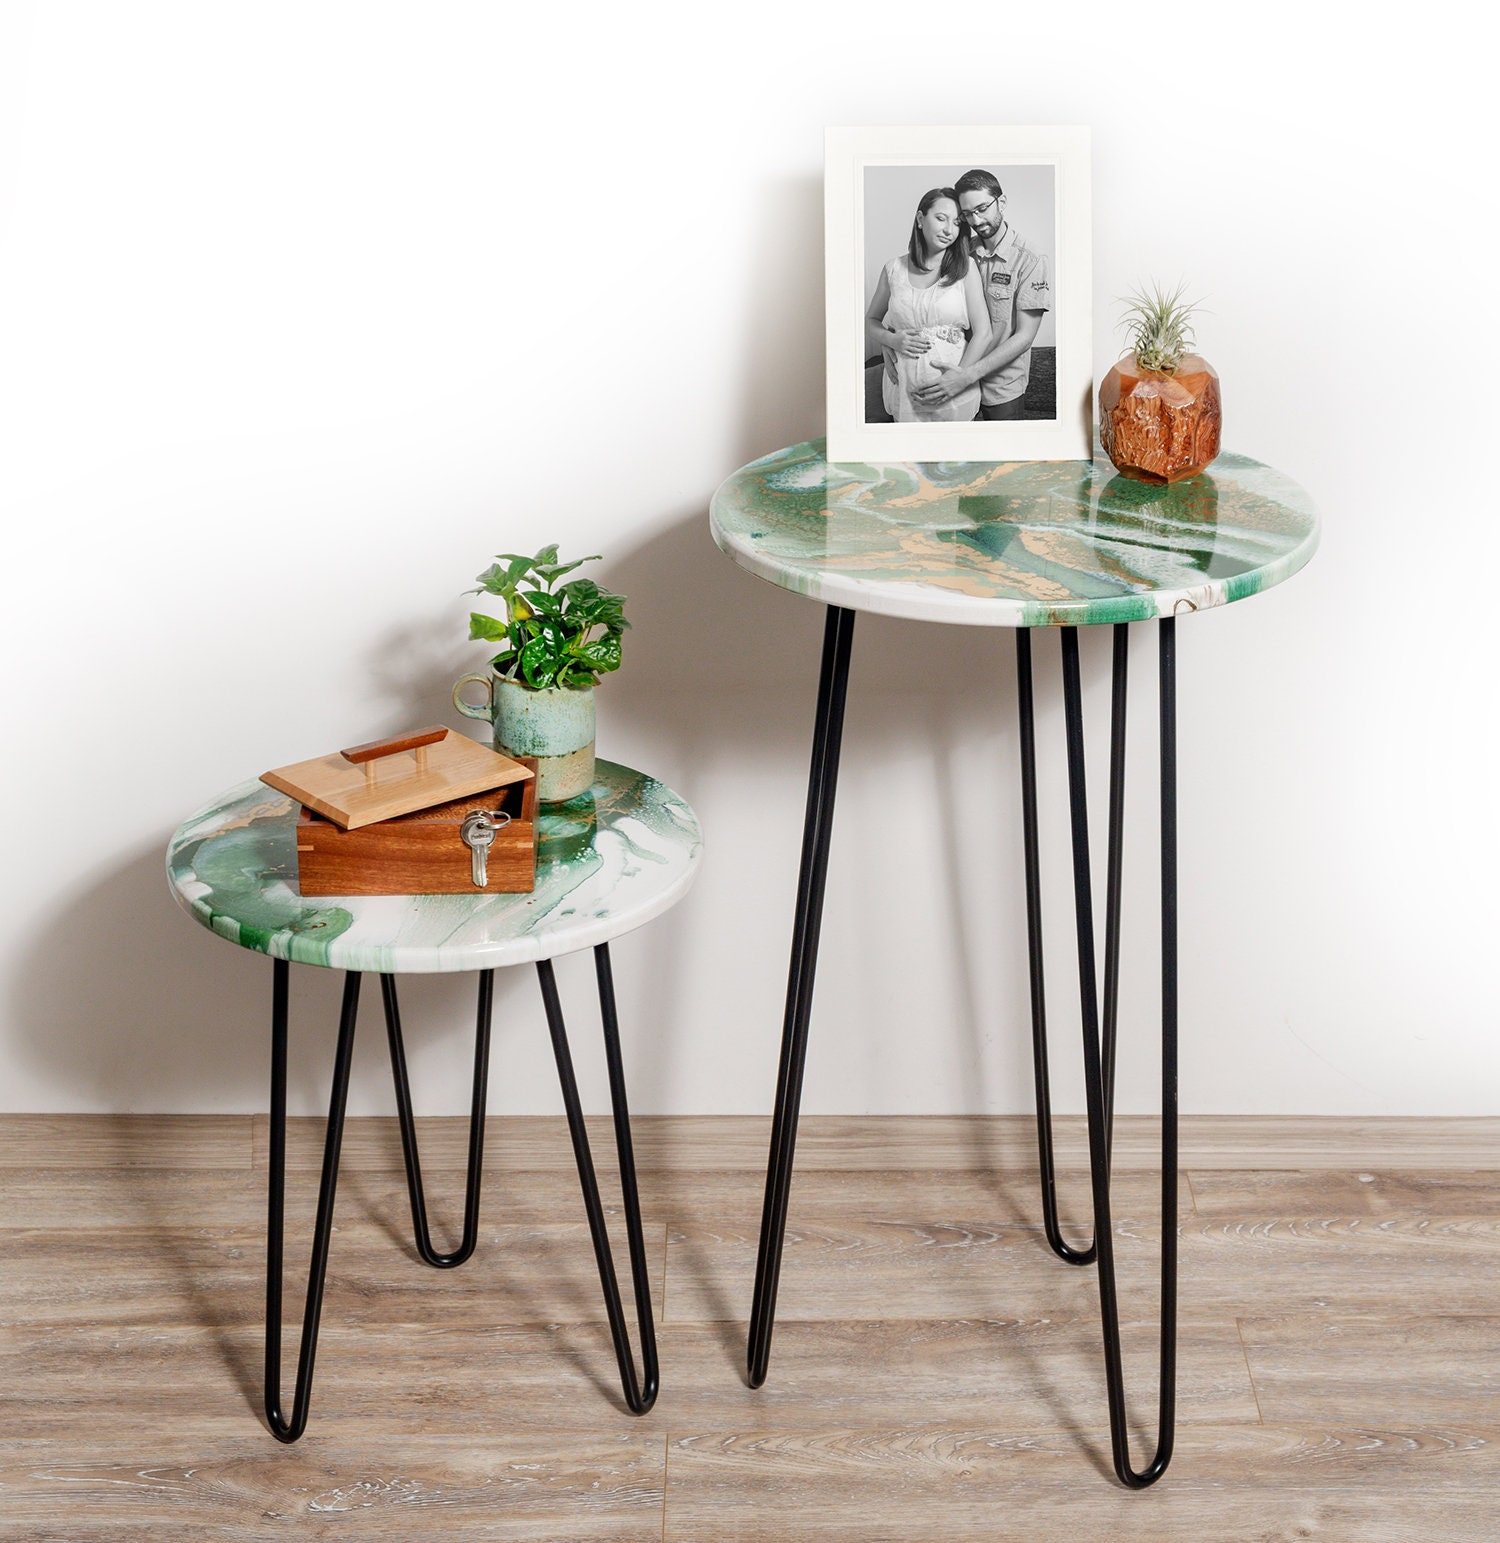 Picture of: Set Of 2 Resin Art Side Tables Modern Green And Bronze Coffee Tables Living Room End Table Set